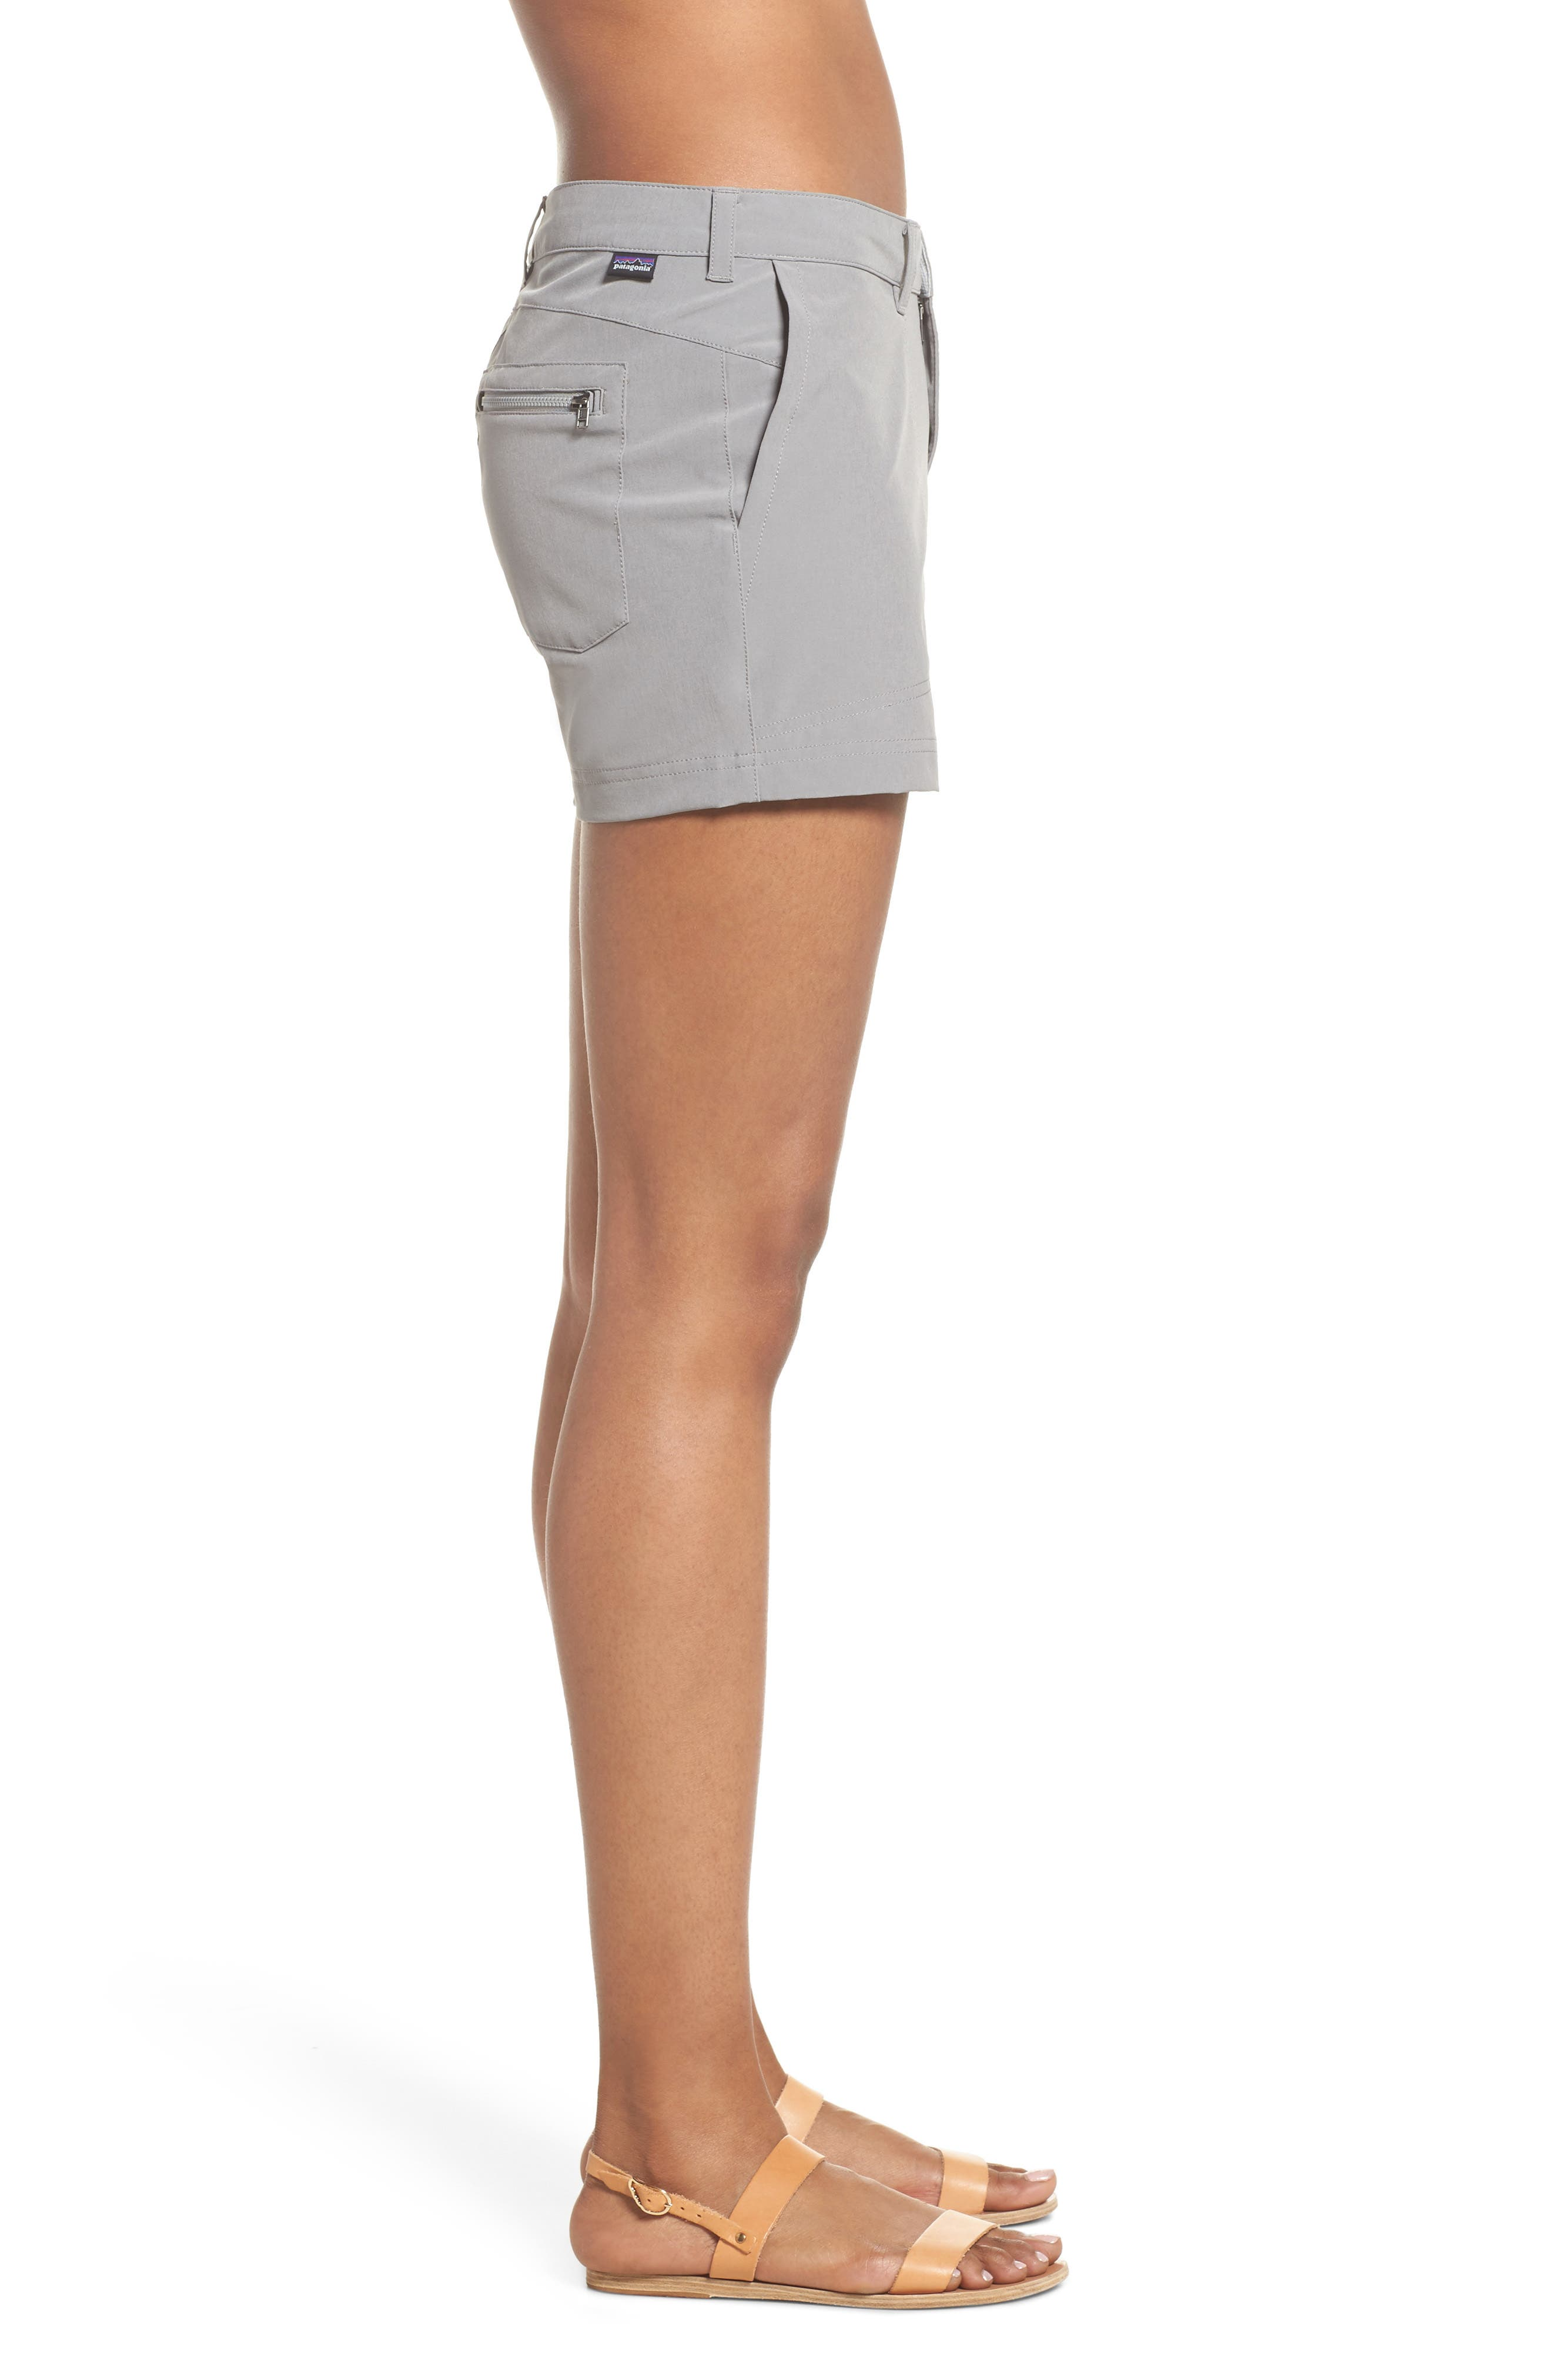 Happy Hike Shorts,                             Alternate thumbnail 3, color,                             Feather Grey